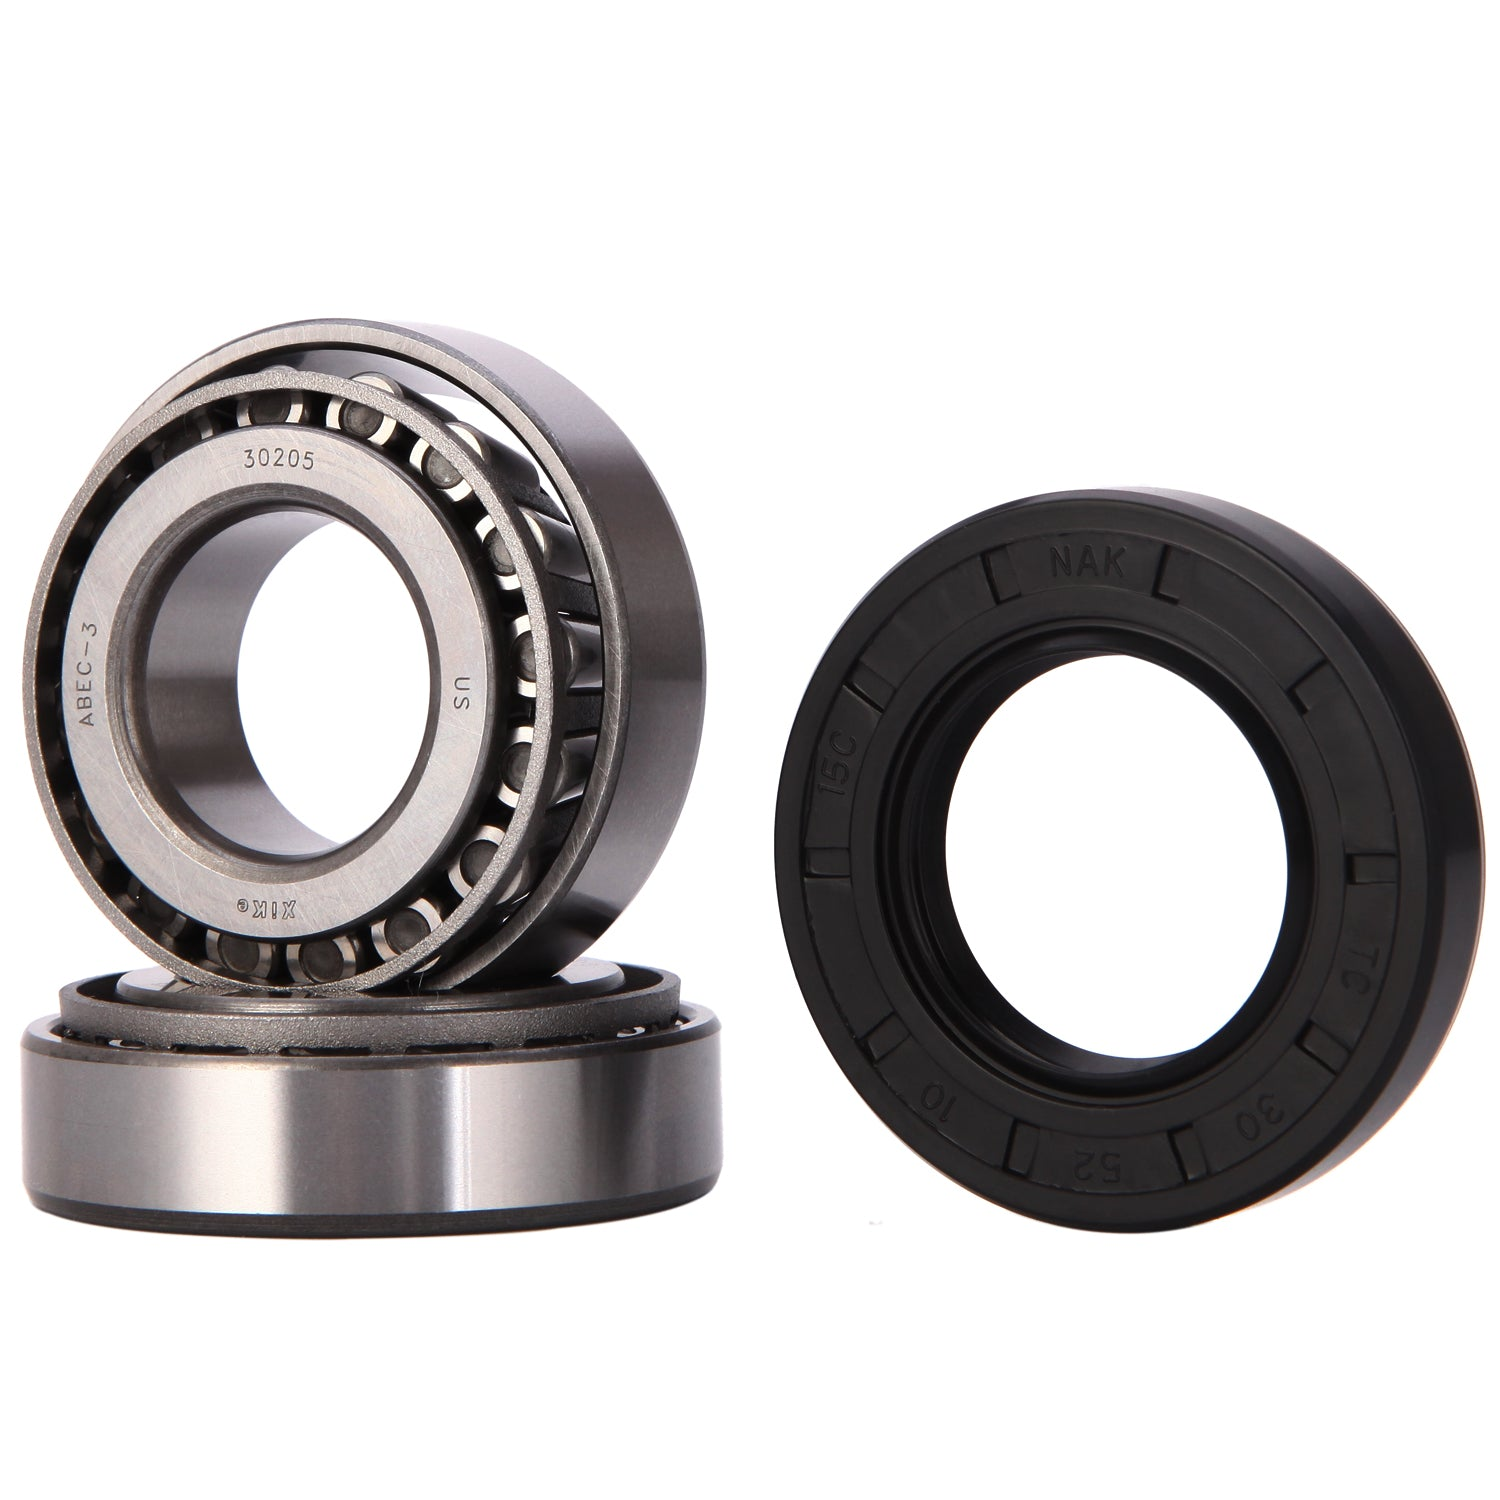 1, Q58 XiKe Roller Ball Transfer Bearings